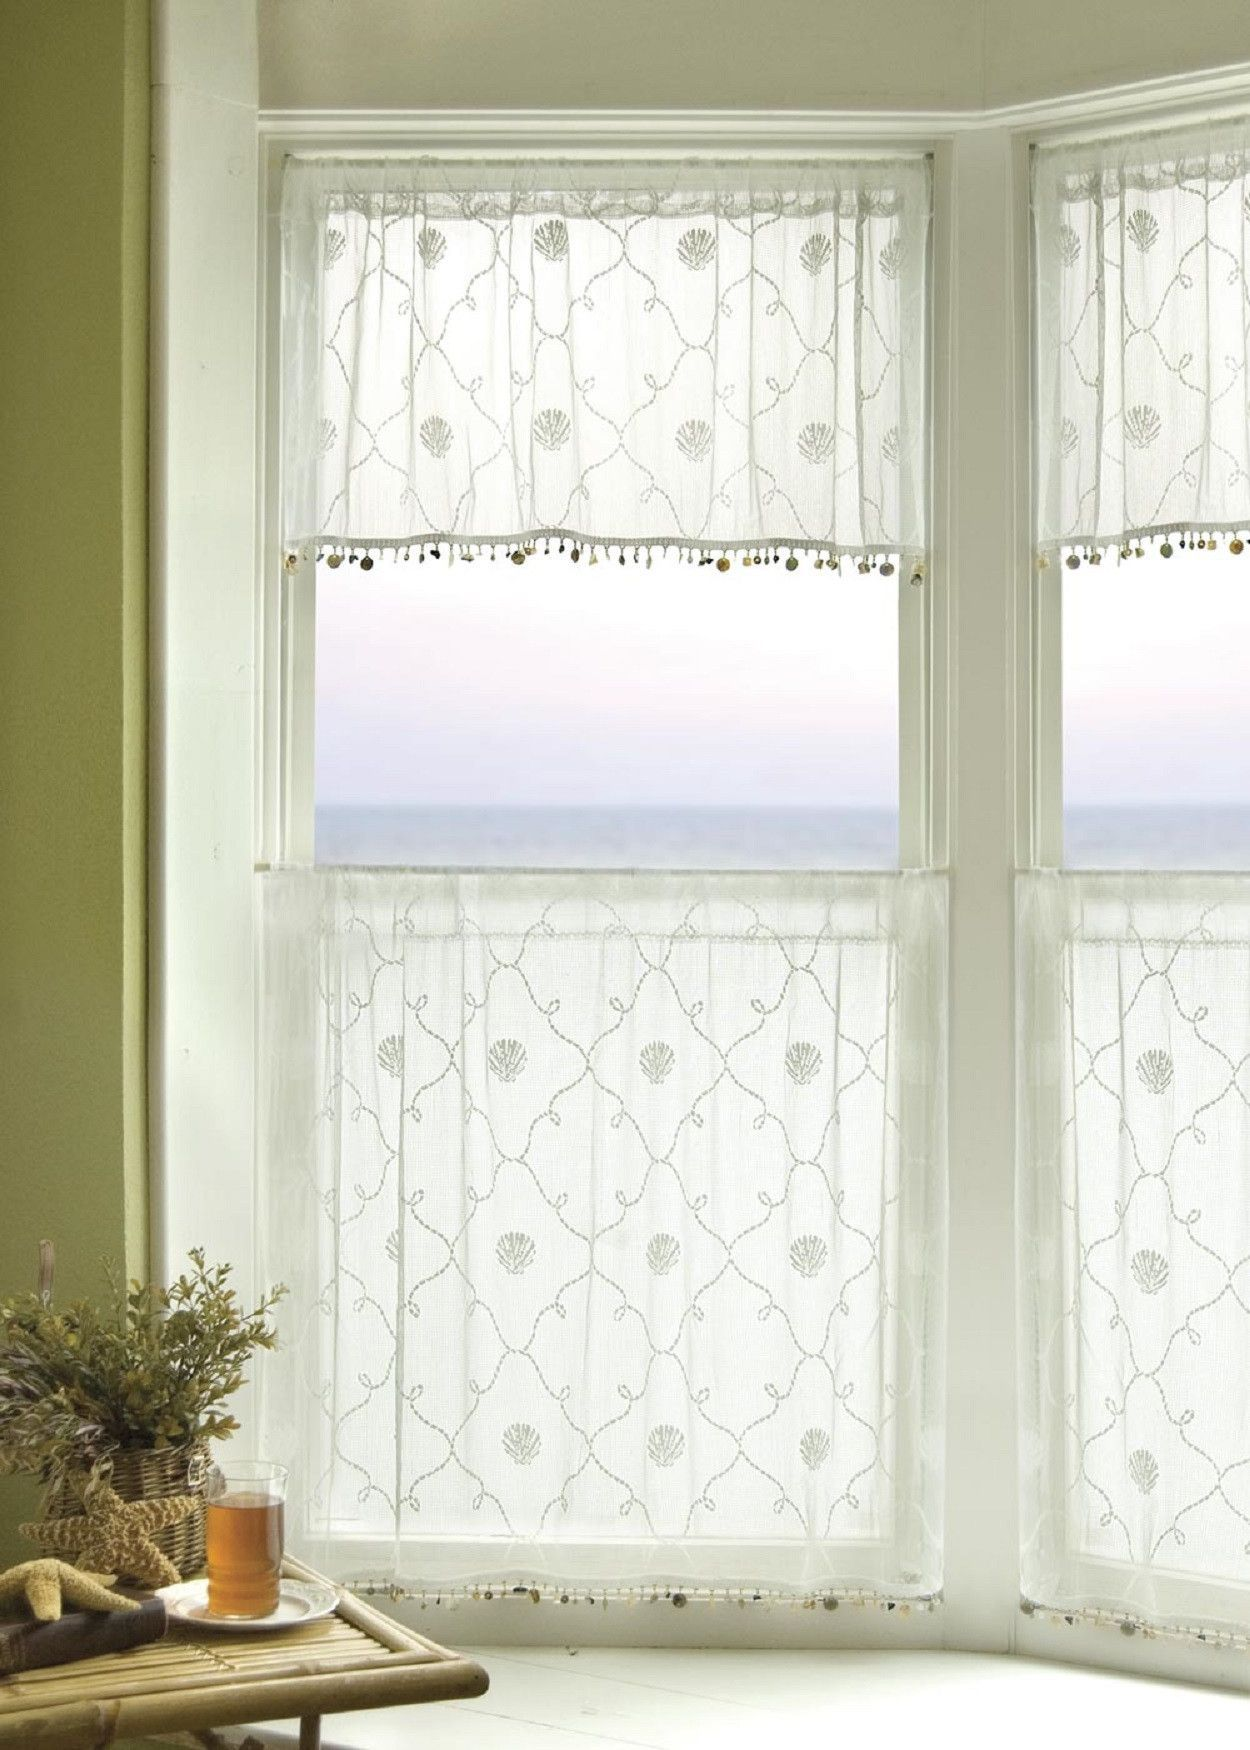 Heritage Lace Beach Trellis Tier With Trim 42x30 White Made In Usa